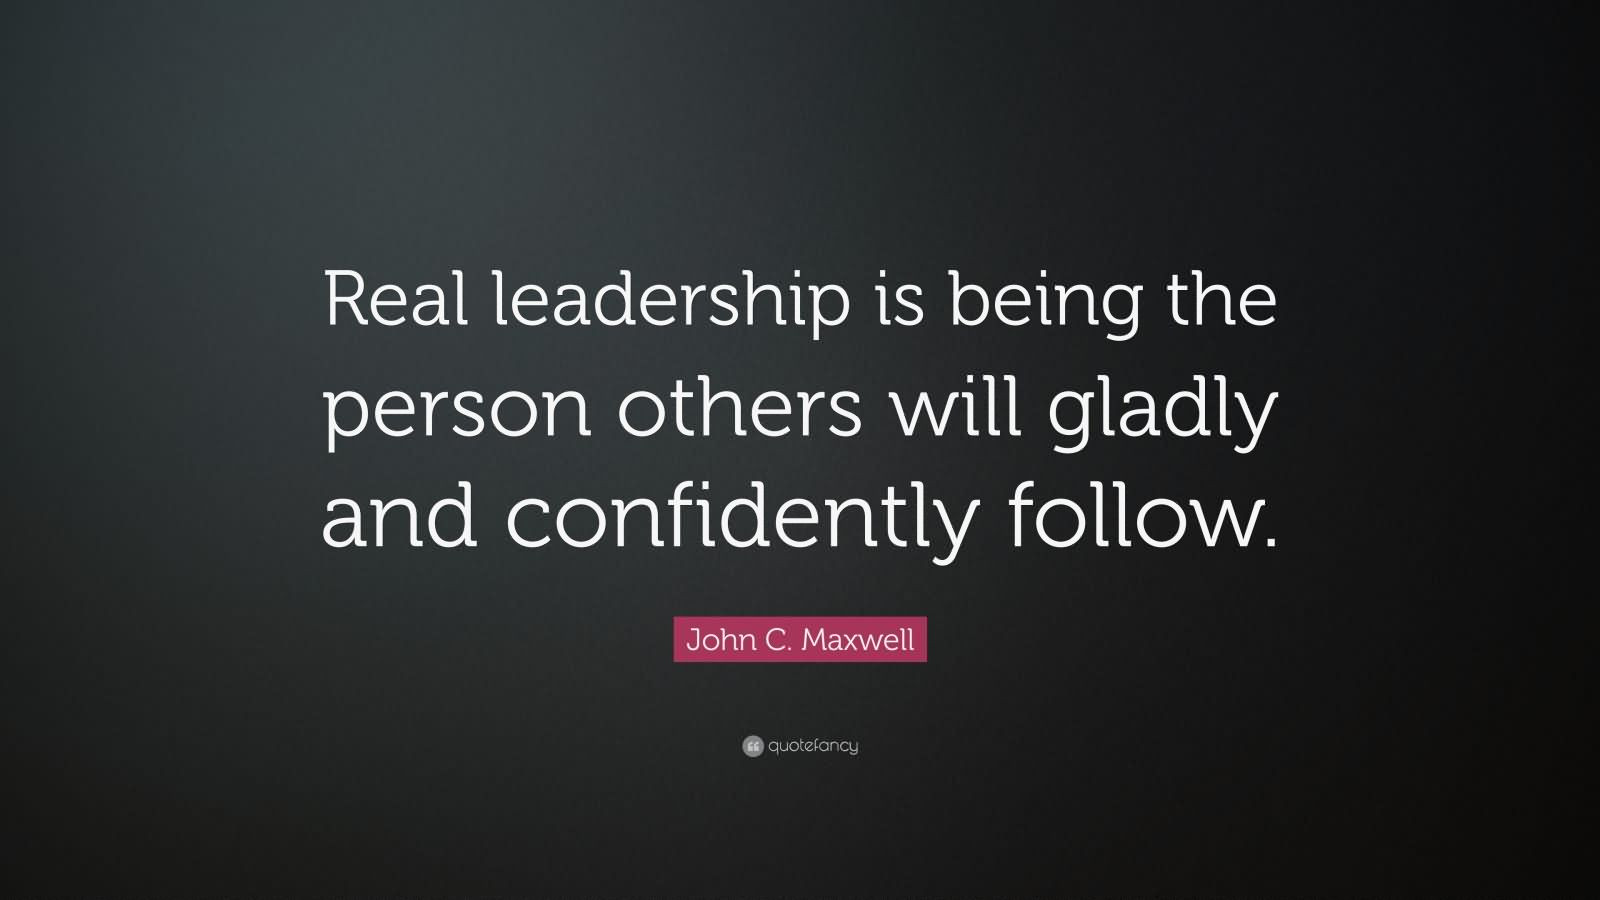 John Maxwell Quotes On Leadership  75 Leadership Quotes Sayings about Leaders